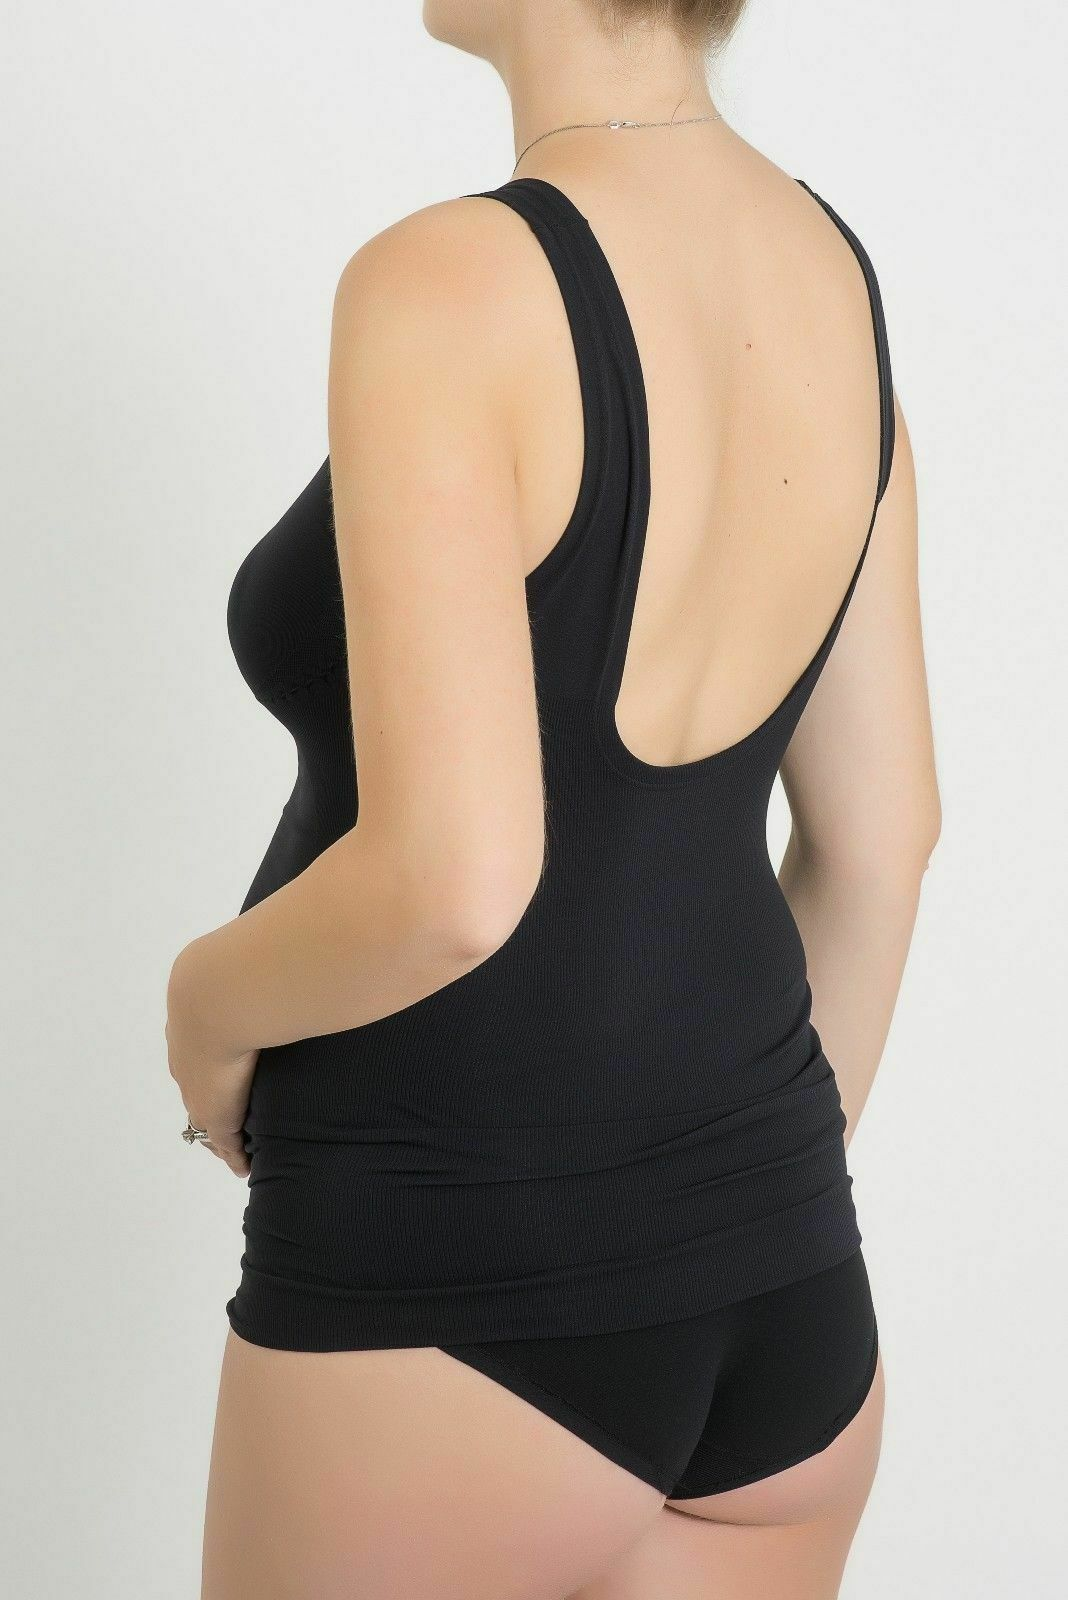 Bellissima-Women-039-s-Maternity-Tank-Top-Light-Breast-Belly-Support-Pregnancy-Cami thumbnail 22